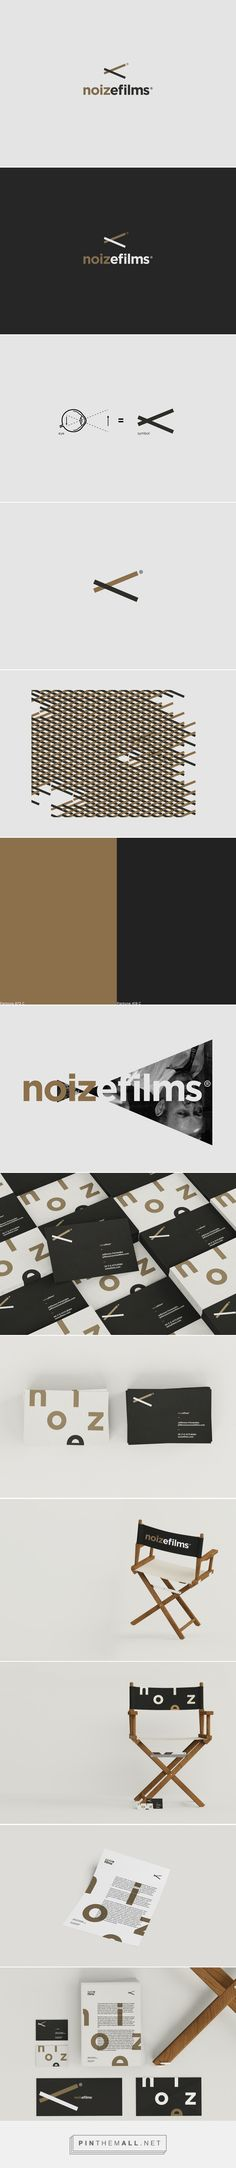 noizefilms® on Behance...